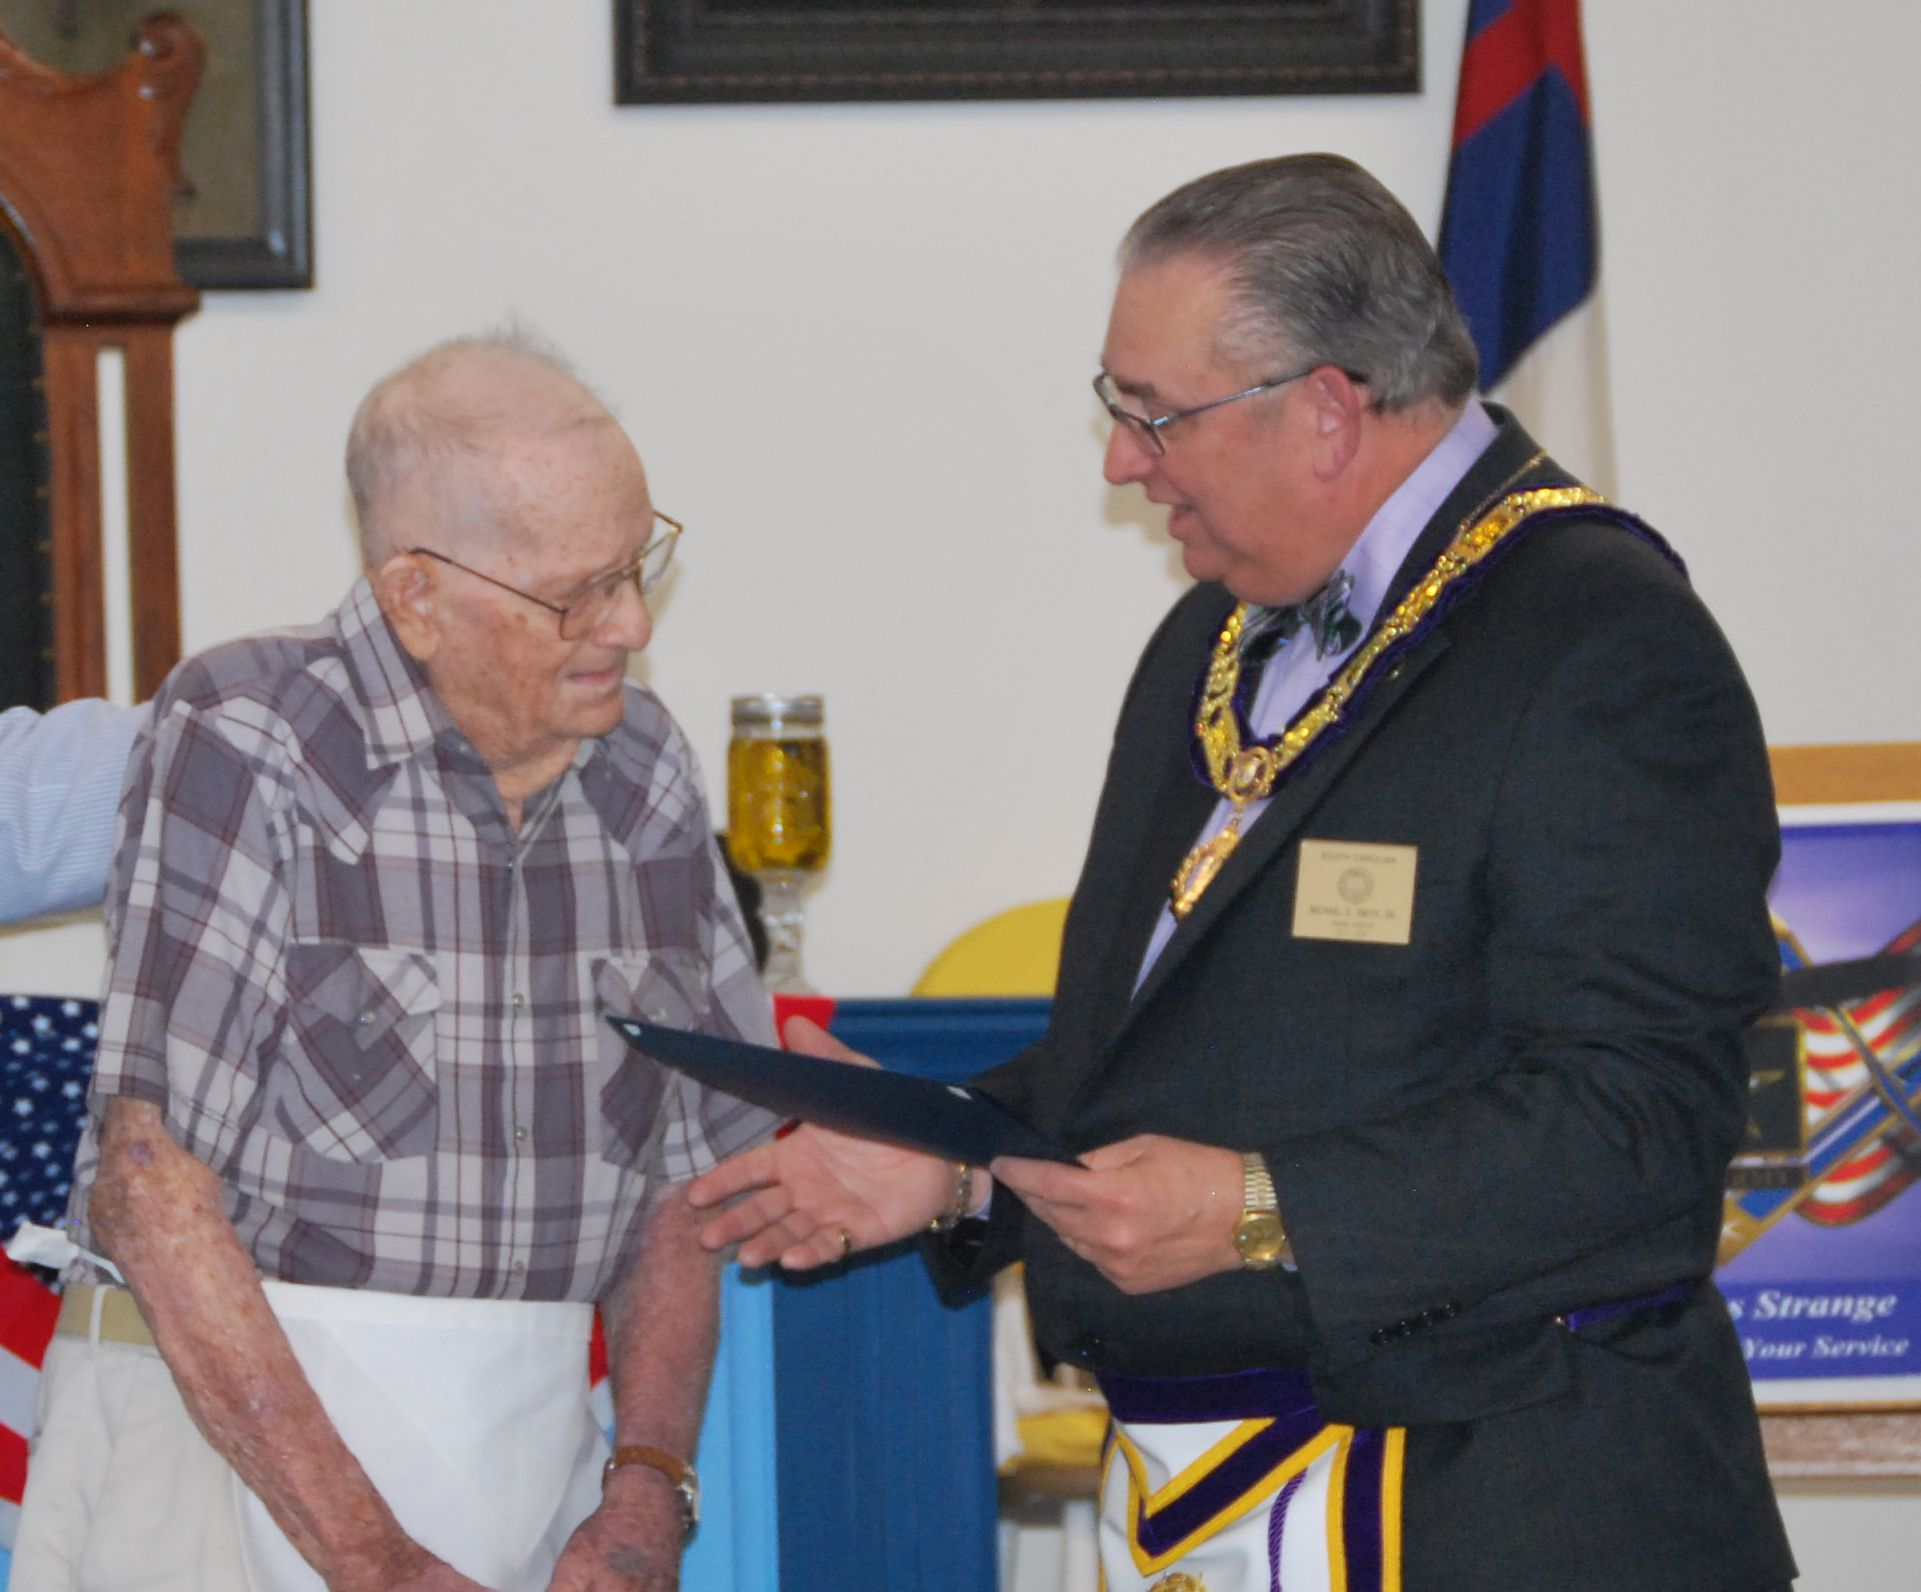 Brother Jay Strange receives his Certificate of Recognition from MWB Michael D. Smith.